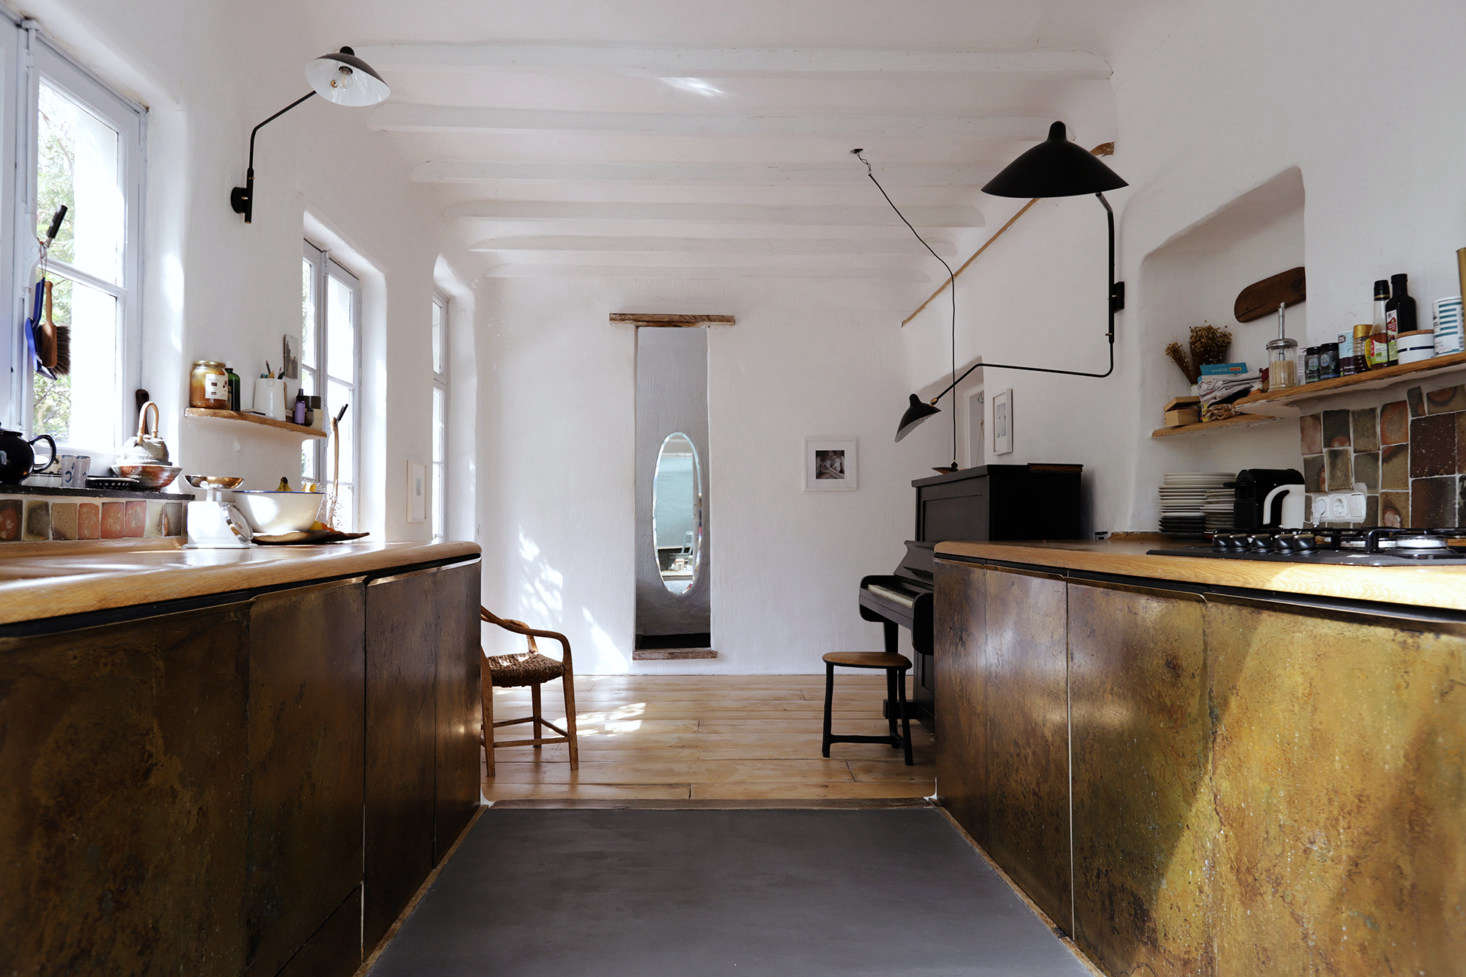 The kitchen floor is Wall2Floormicro-cement with radiant heating beneath. The lights are Serge Mouille: the 1-Arm Rotating Sconce and 2-Arm Rotating Sconce.